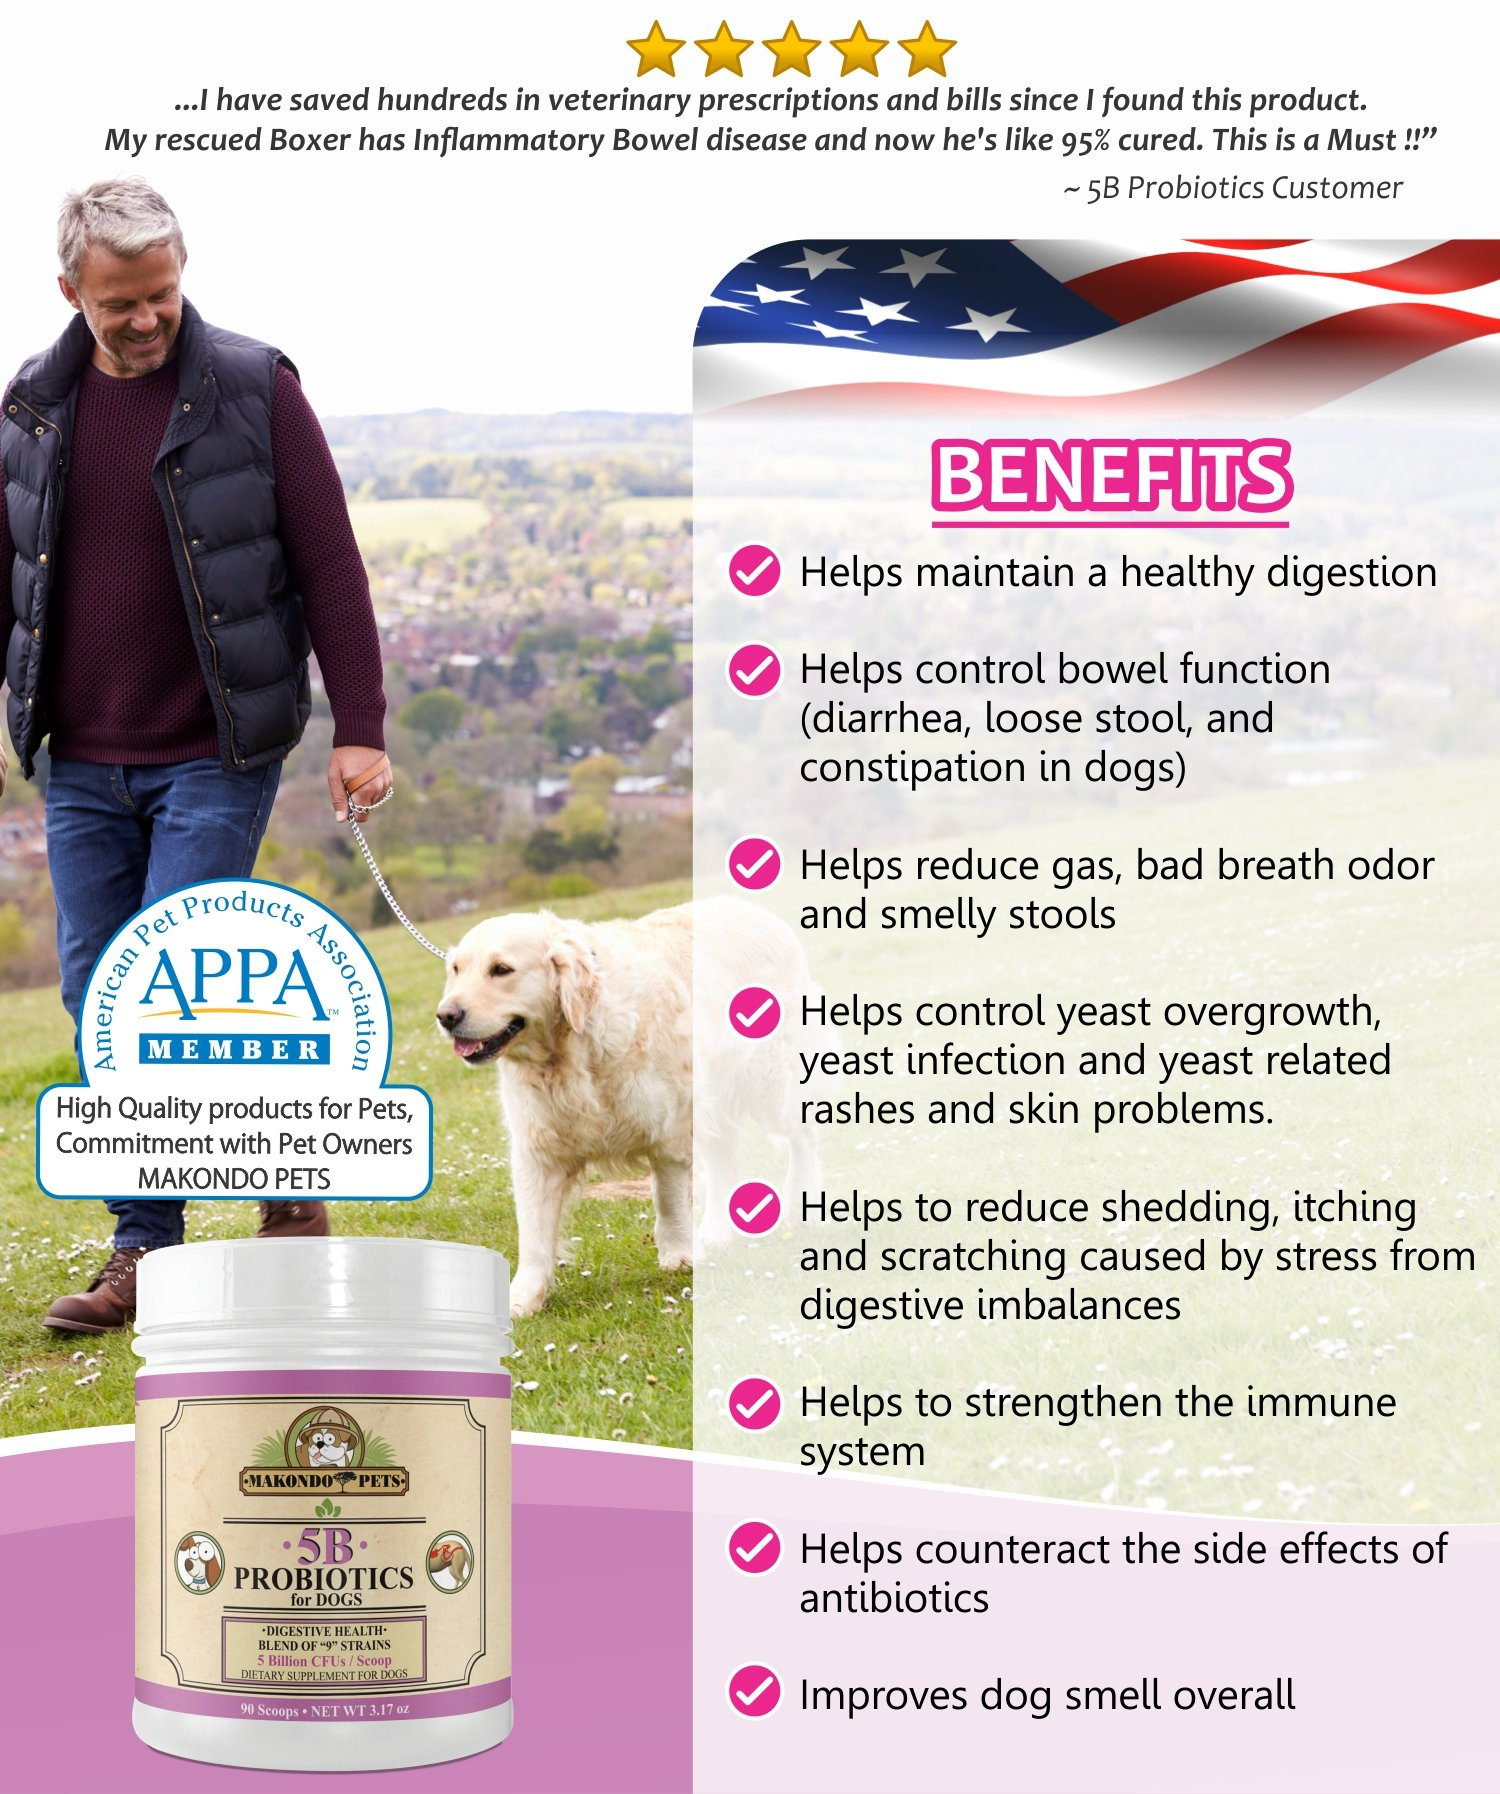 Makondo Pets Probiotics for Dogs & Puppies – Flavored, Made in USA, Extra Strength 9 Species Digestive Support Tummy Relief Enzyme Powder, 5 Billion CFUs per Scoop – 90 Scoops per Tub, 3.17 oz by Makondo Pets (Image #2)